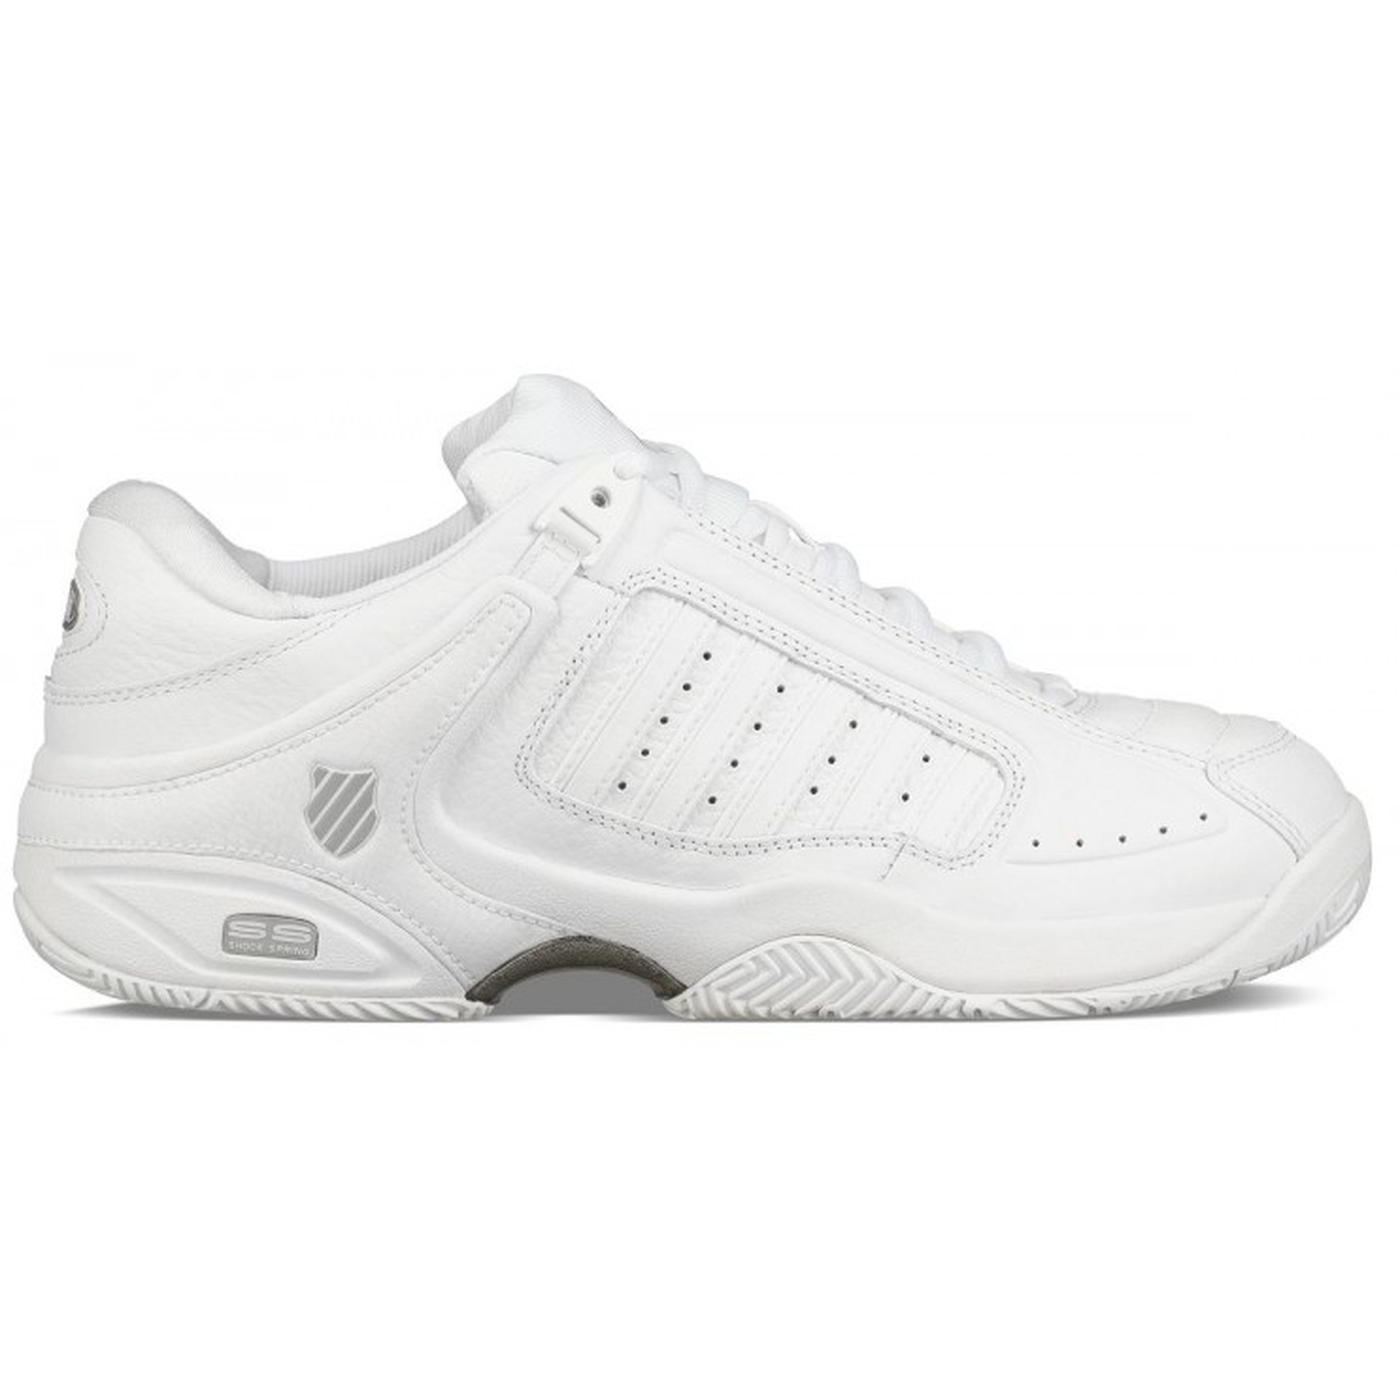 K Swiss Defier Womens Tennis Shoes - White Highrise